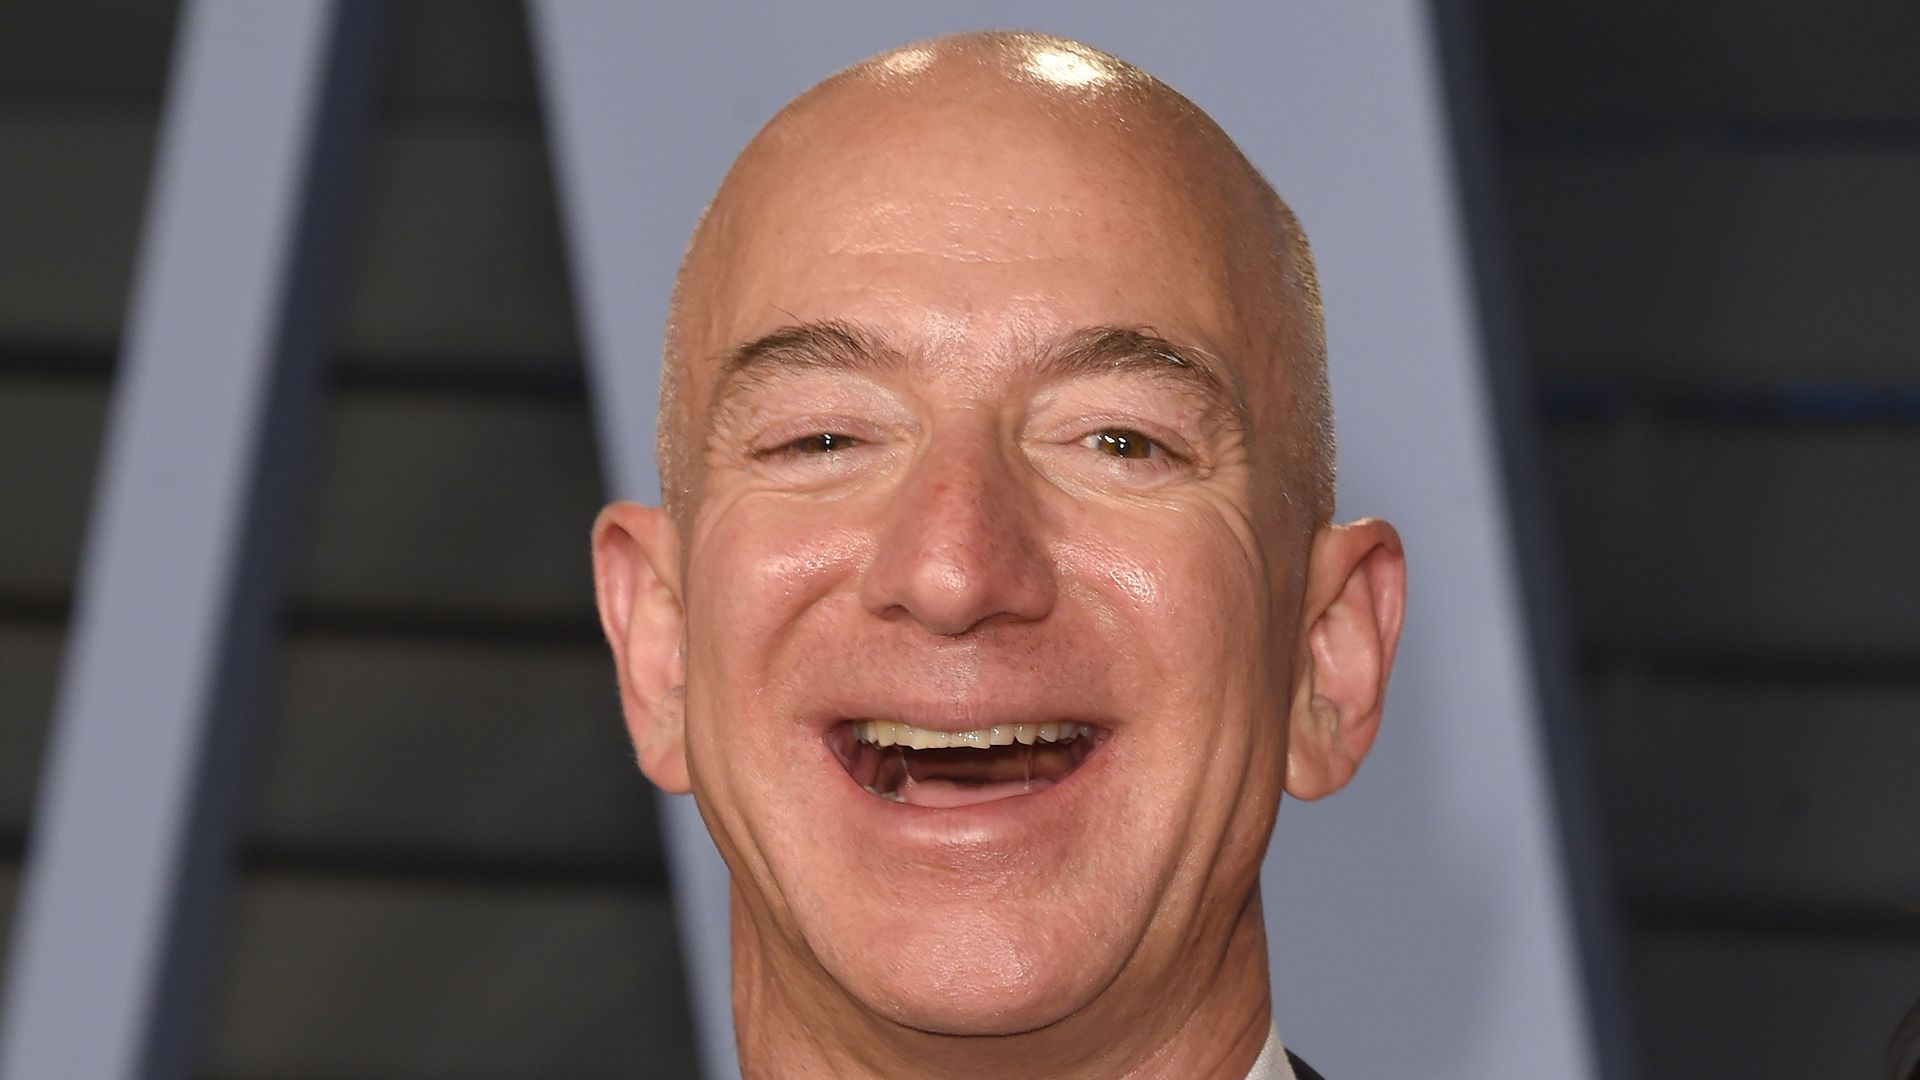 Jeff Bezos at an Oscar after-party.